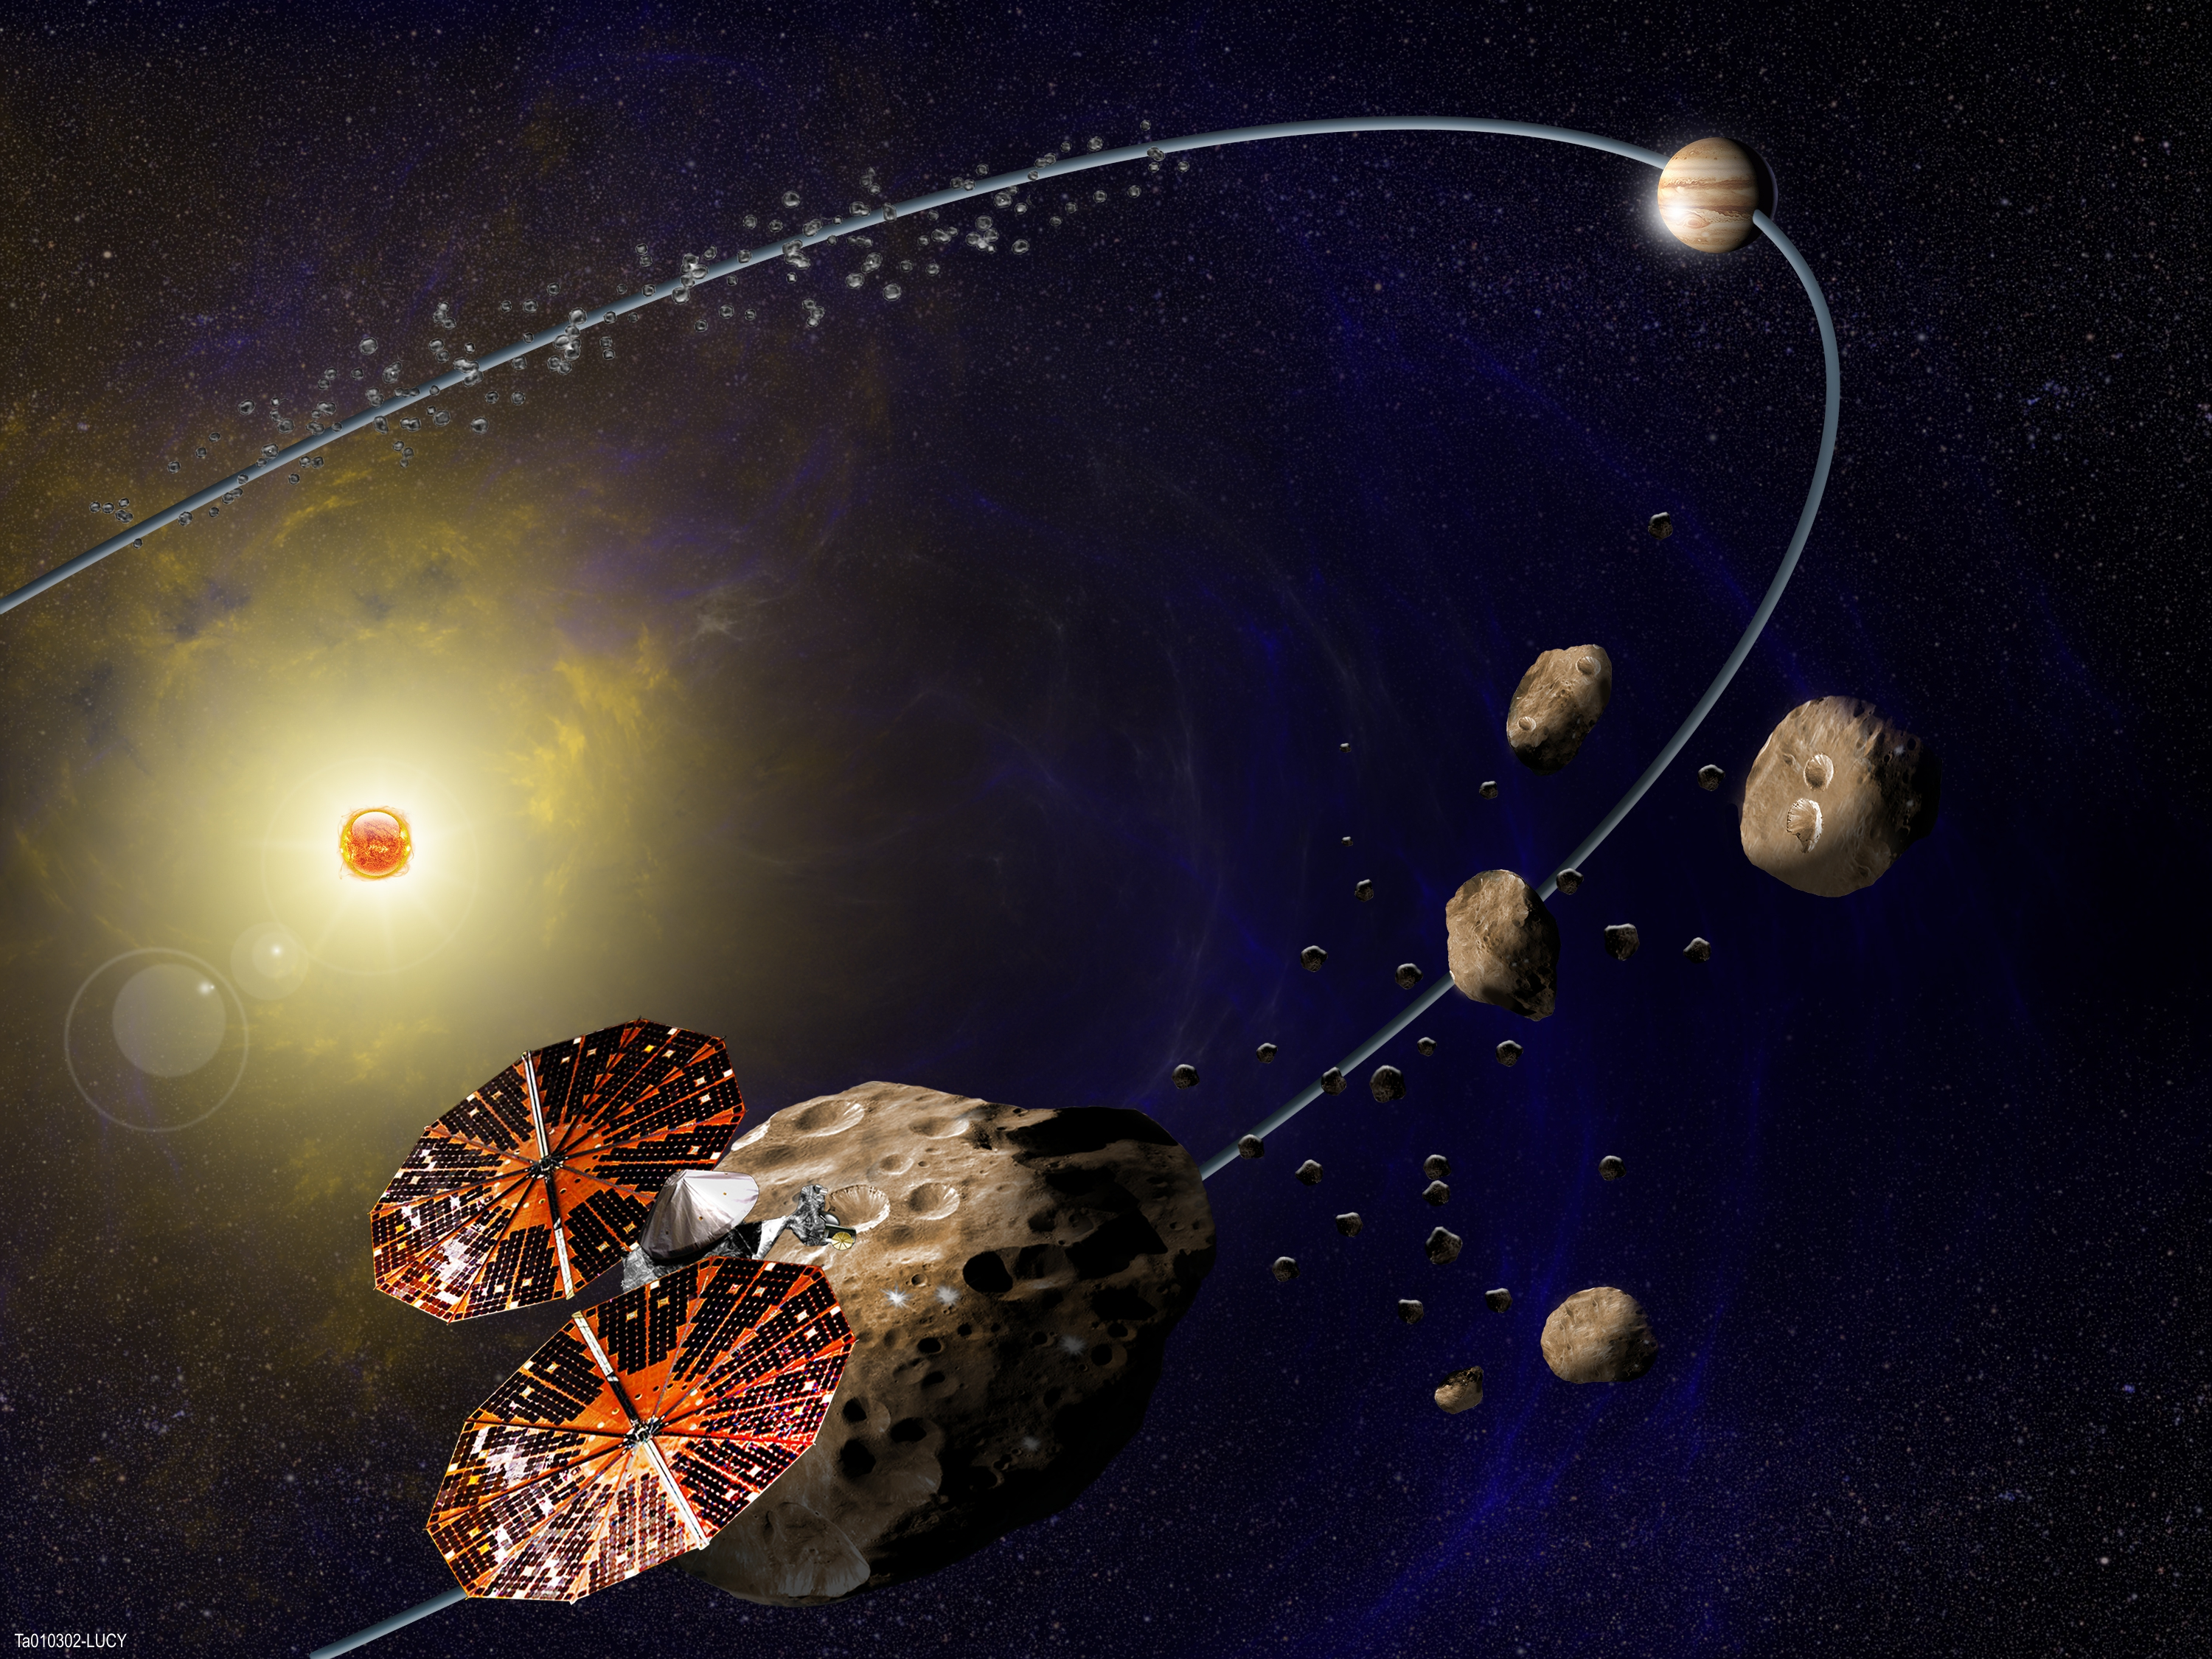 <p>In this artist's concept (not to scale), the Lucy spacecraft is flying by Eurybates, one of the six Trojans asteroids that it will study.</p>